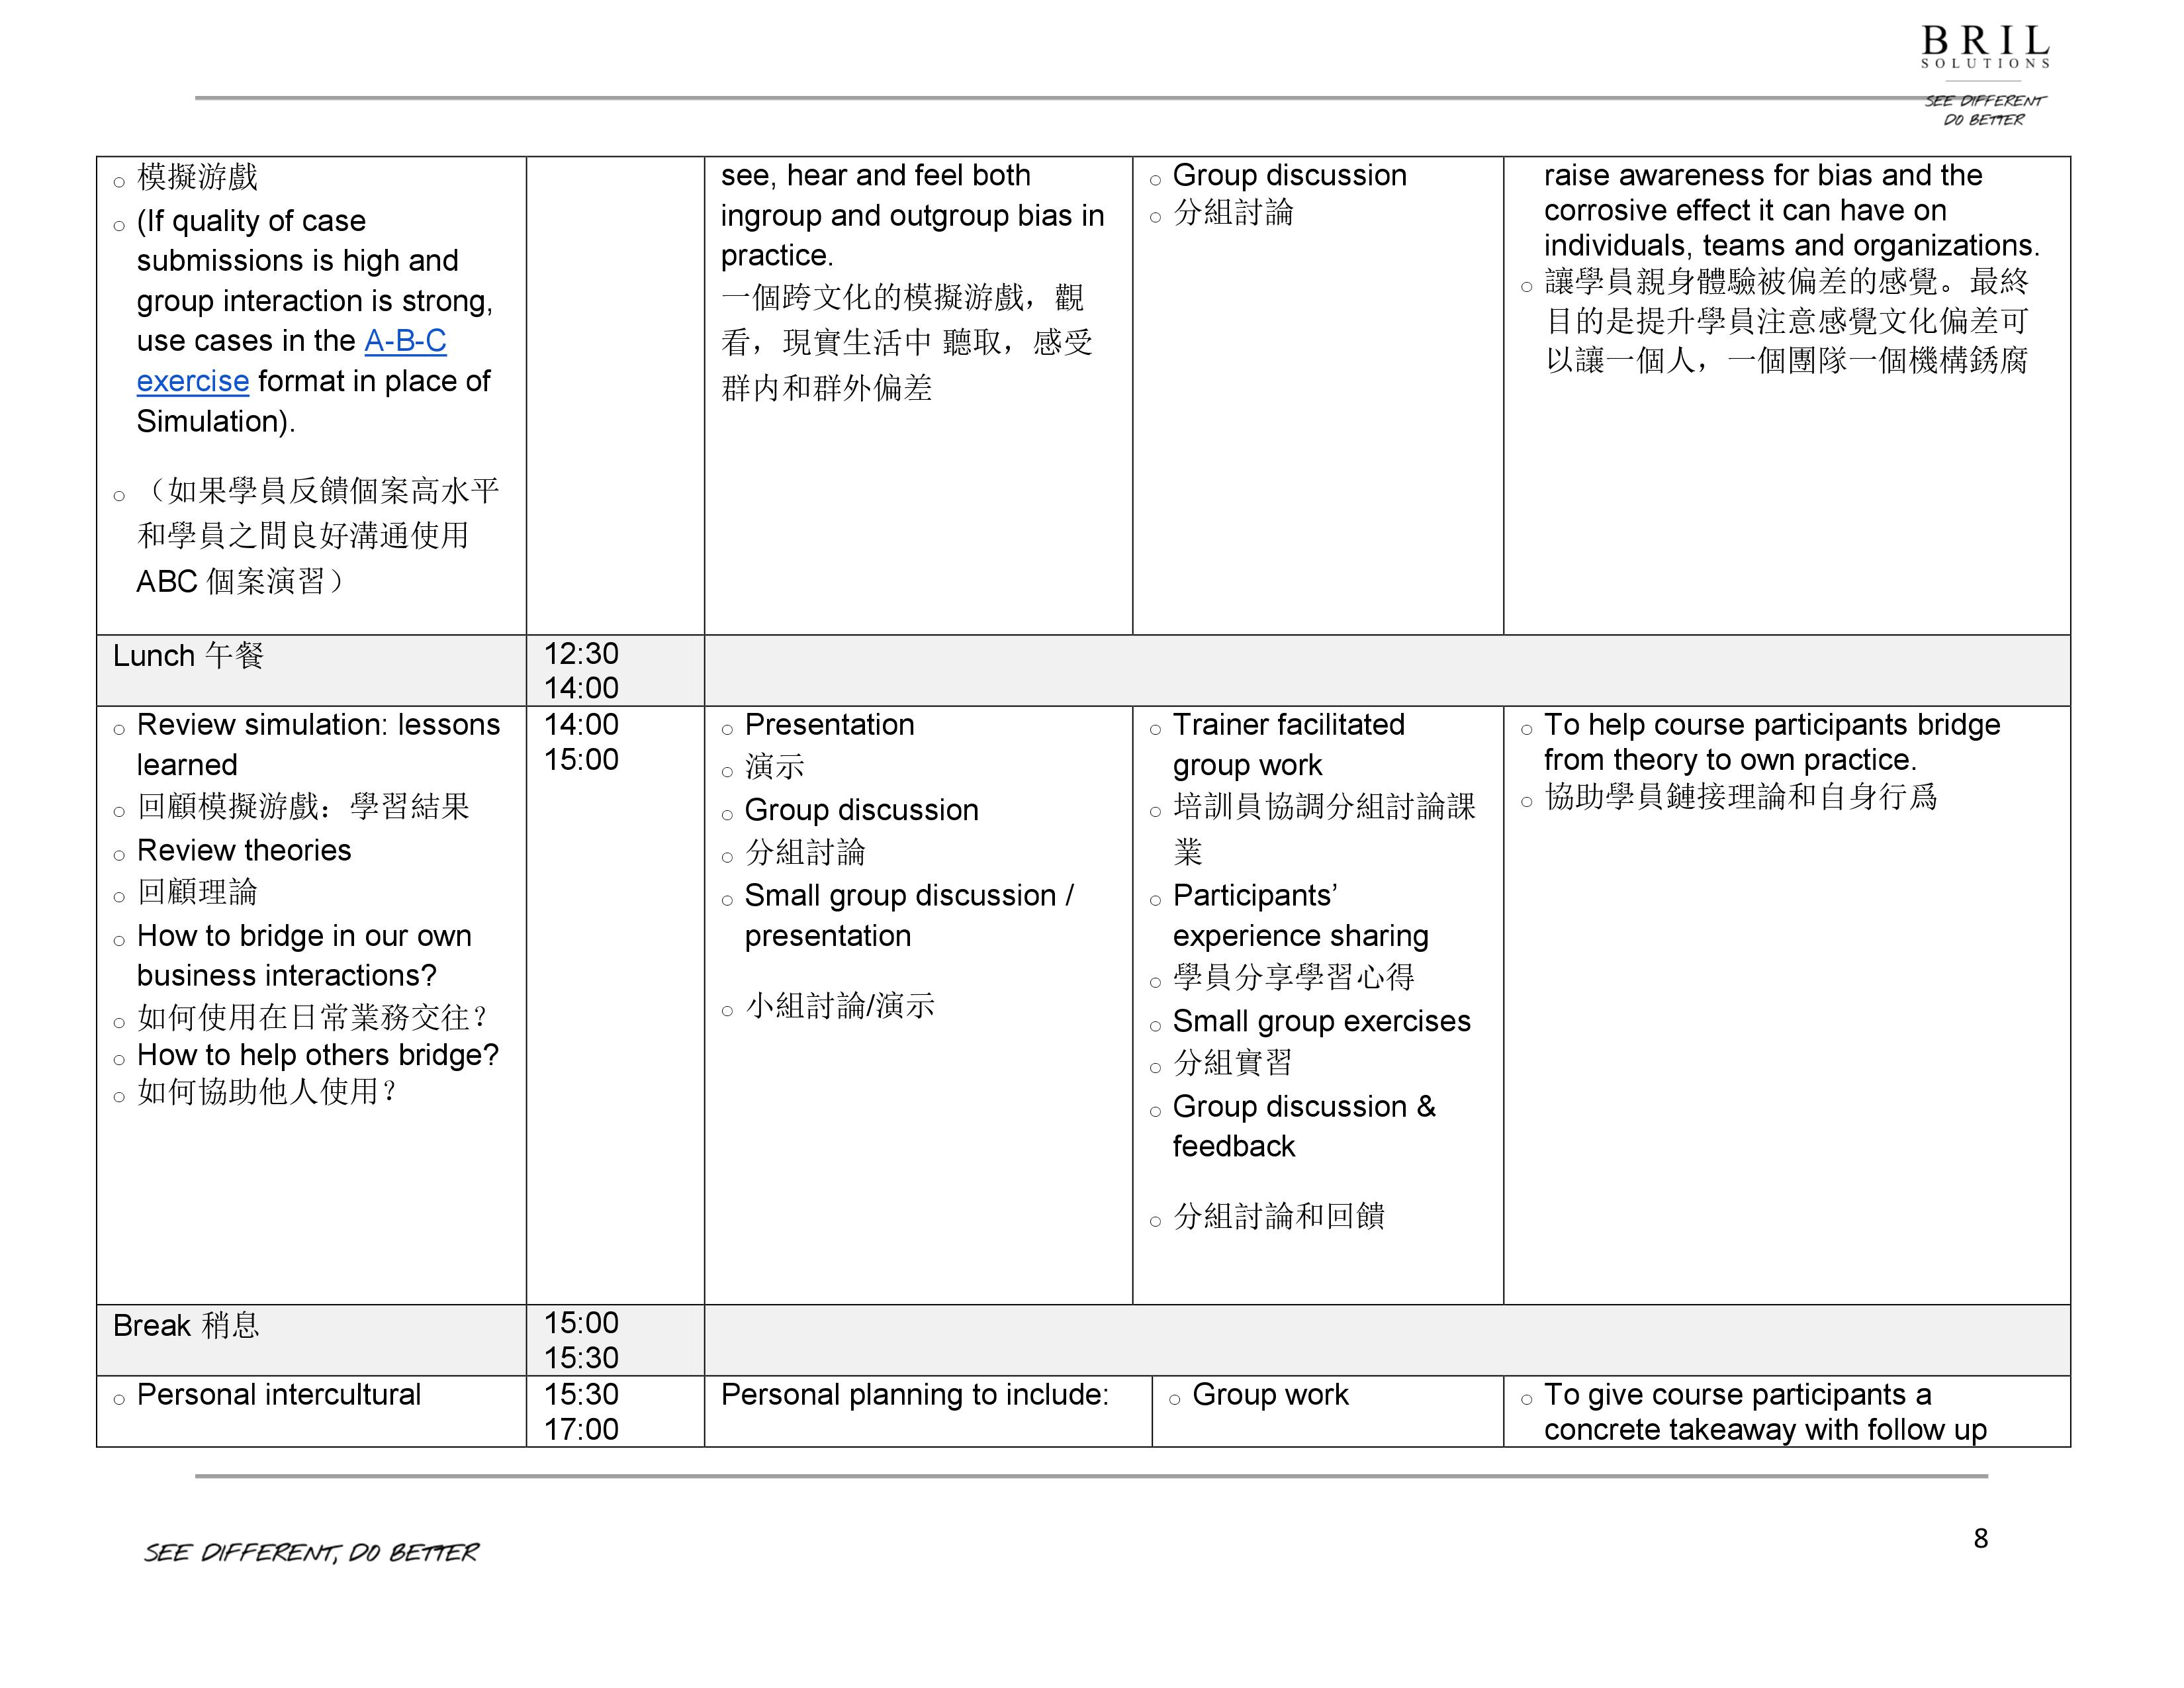 ICBS 2-day Program Overview - page 8